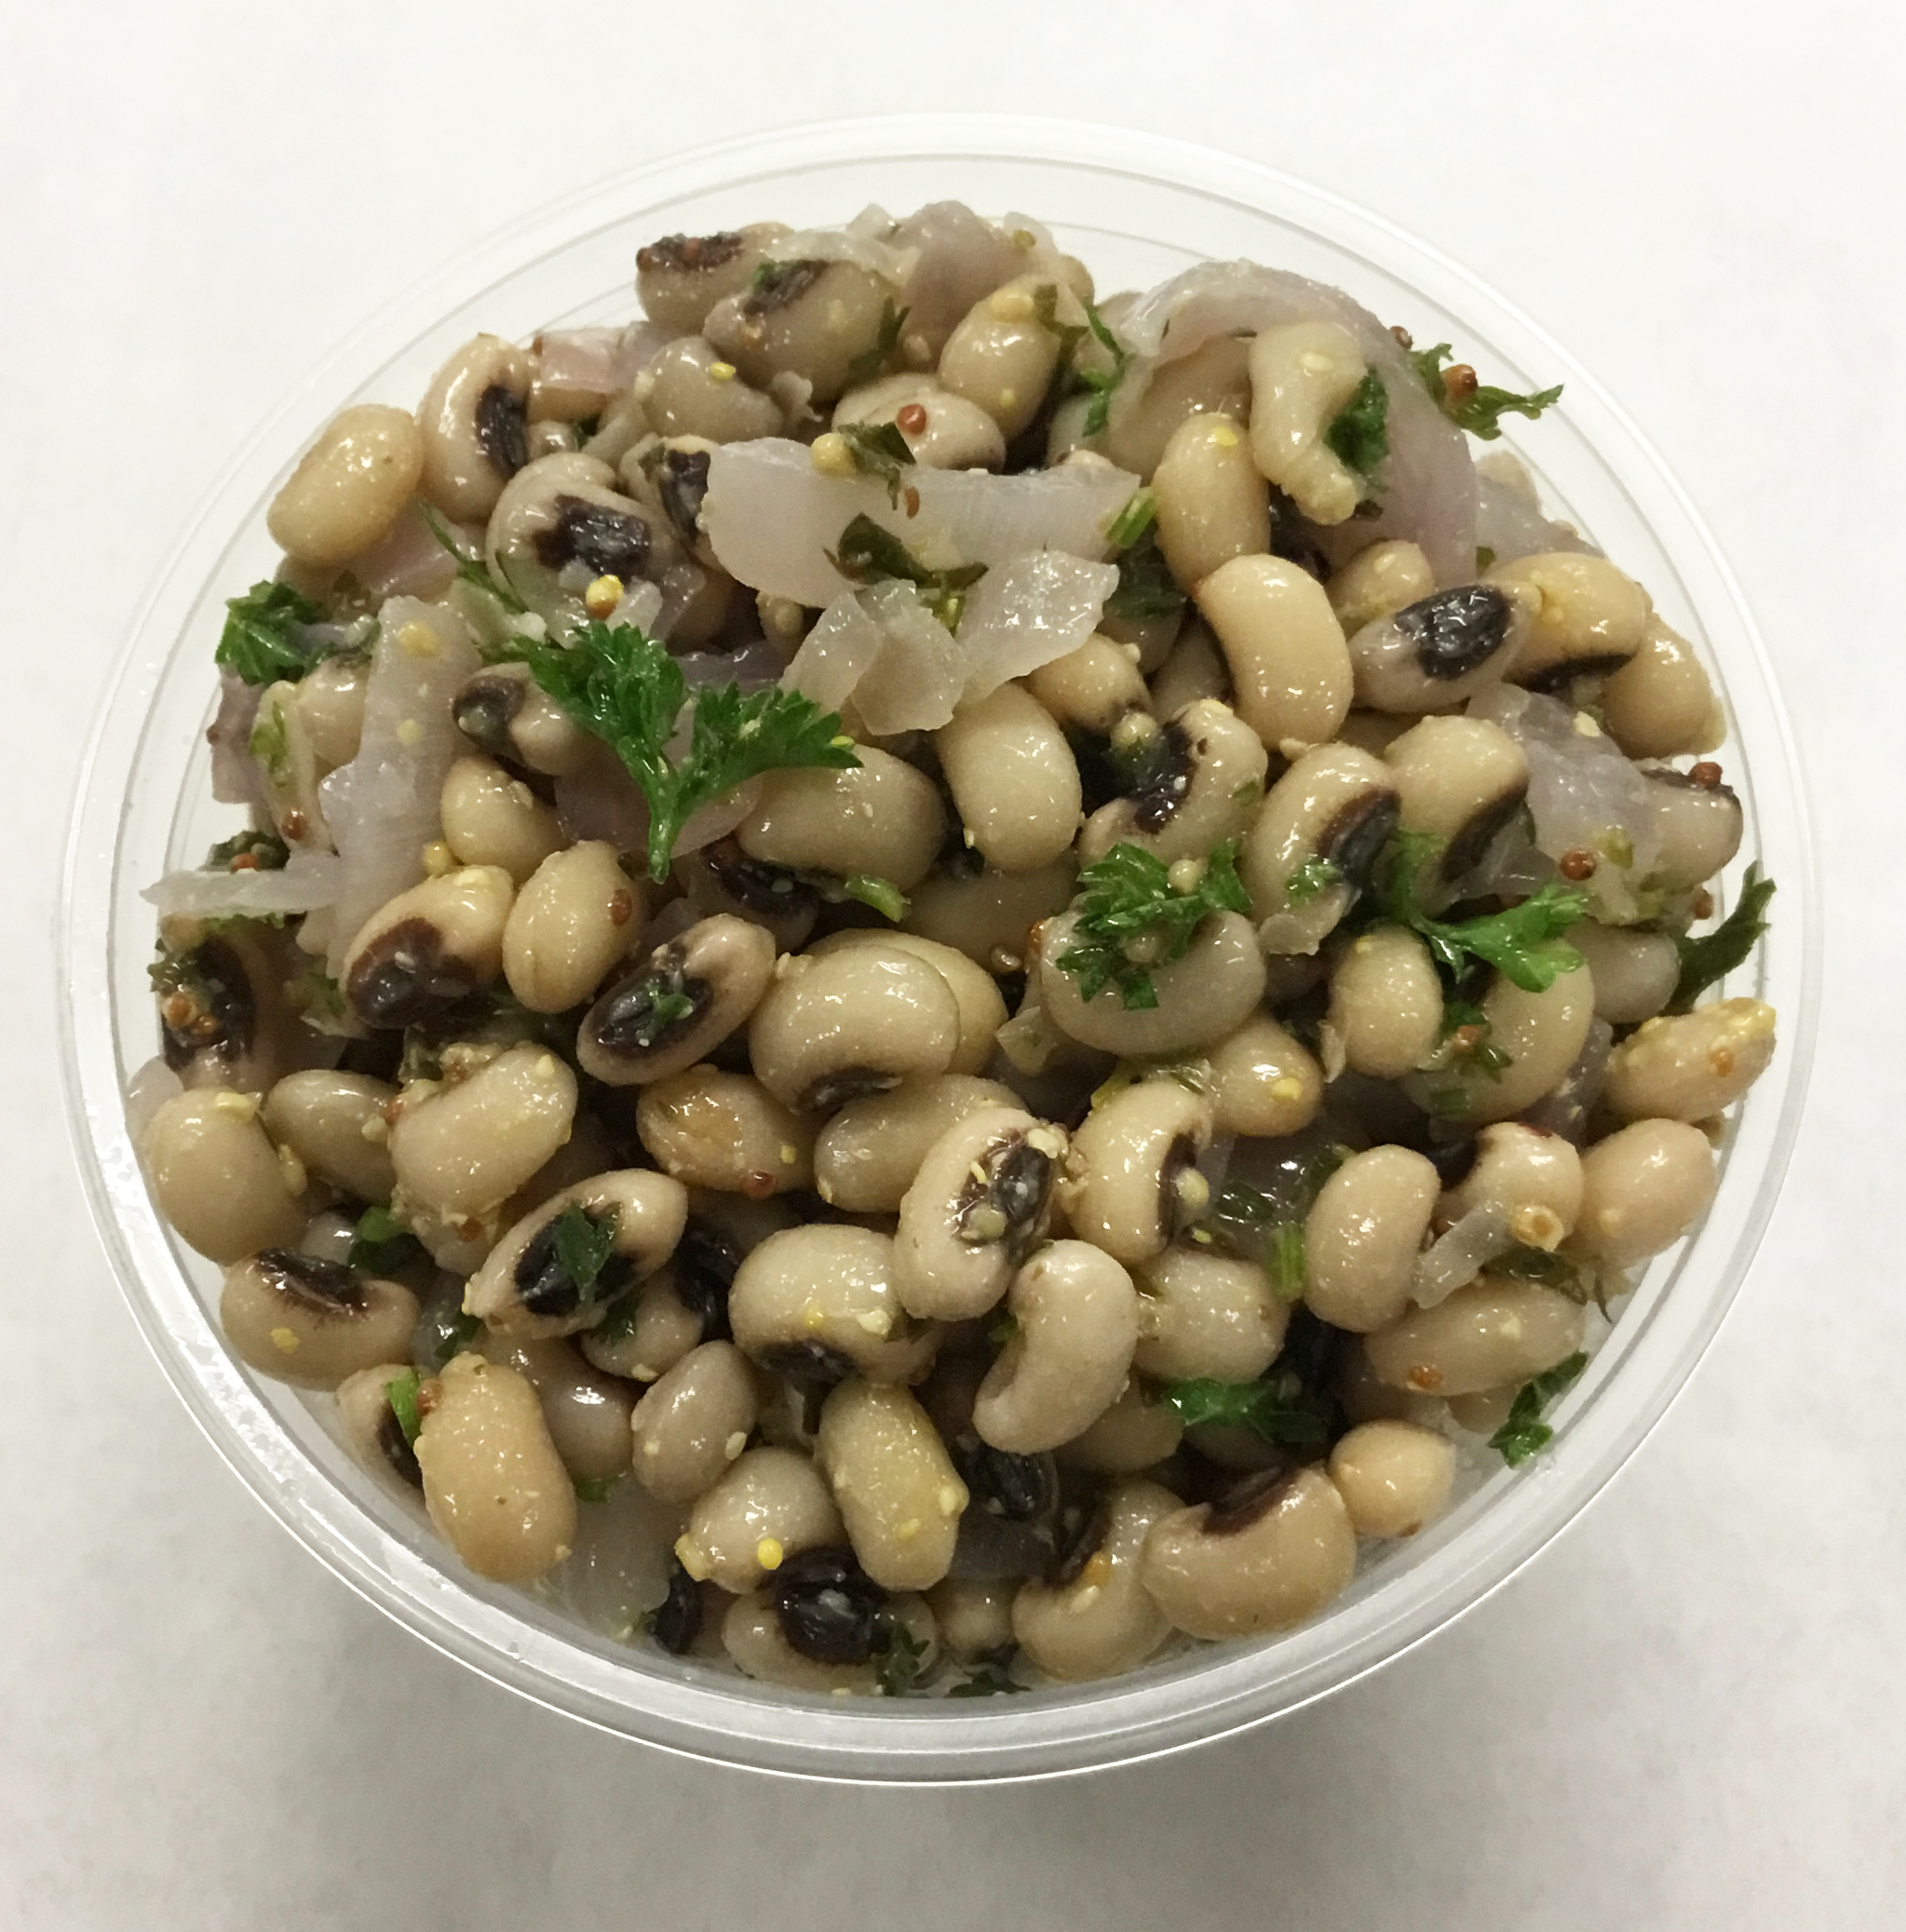 Black eyed peas with red onion, parsley and a French vinaigrette dressing.